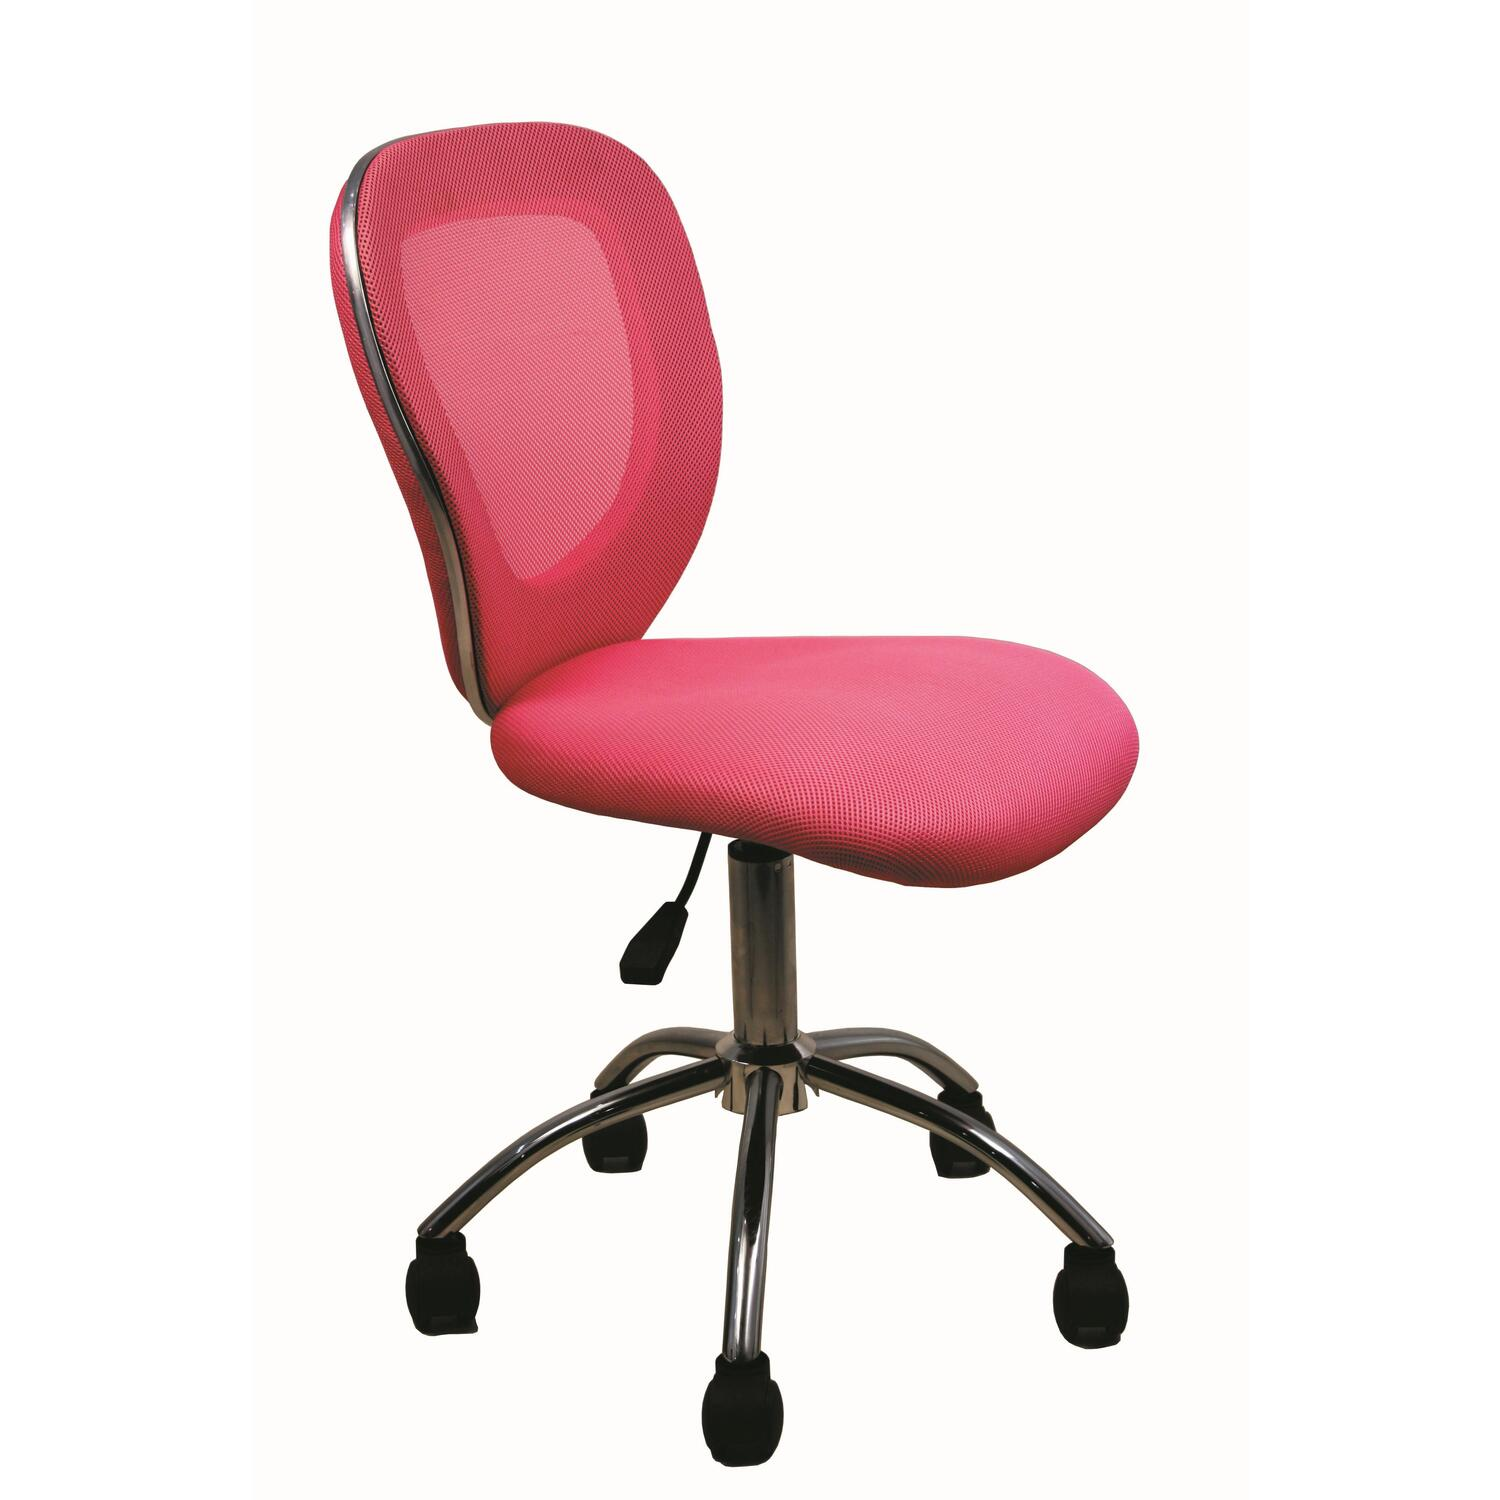 chairs for children office chair with footrest india kids desk art decorating ideas